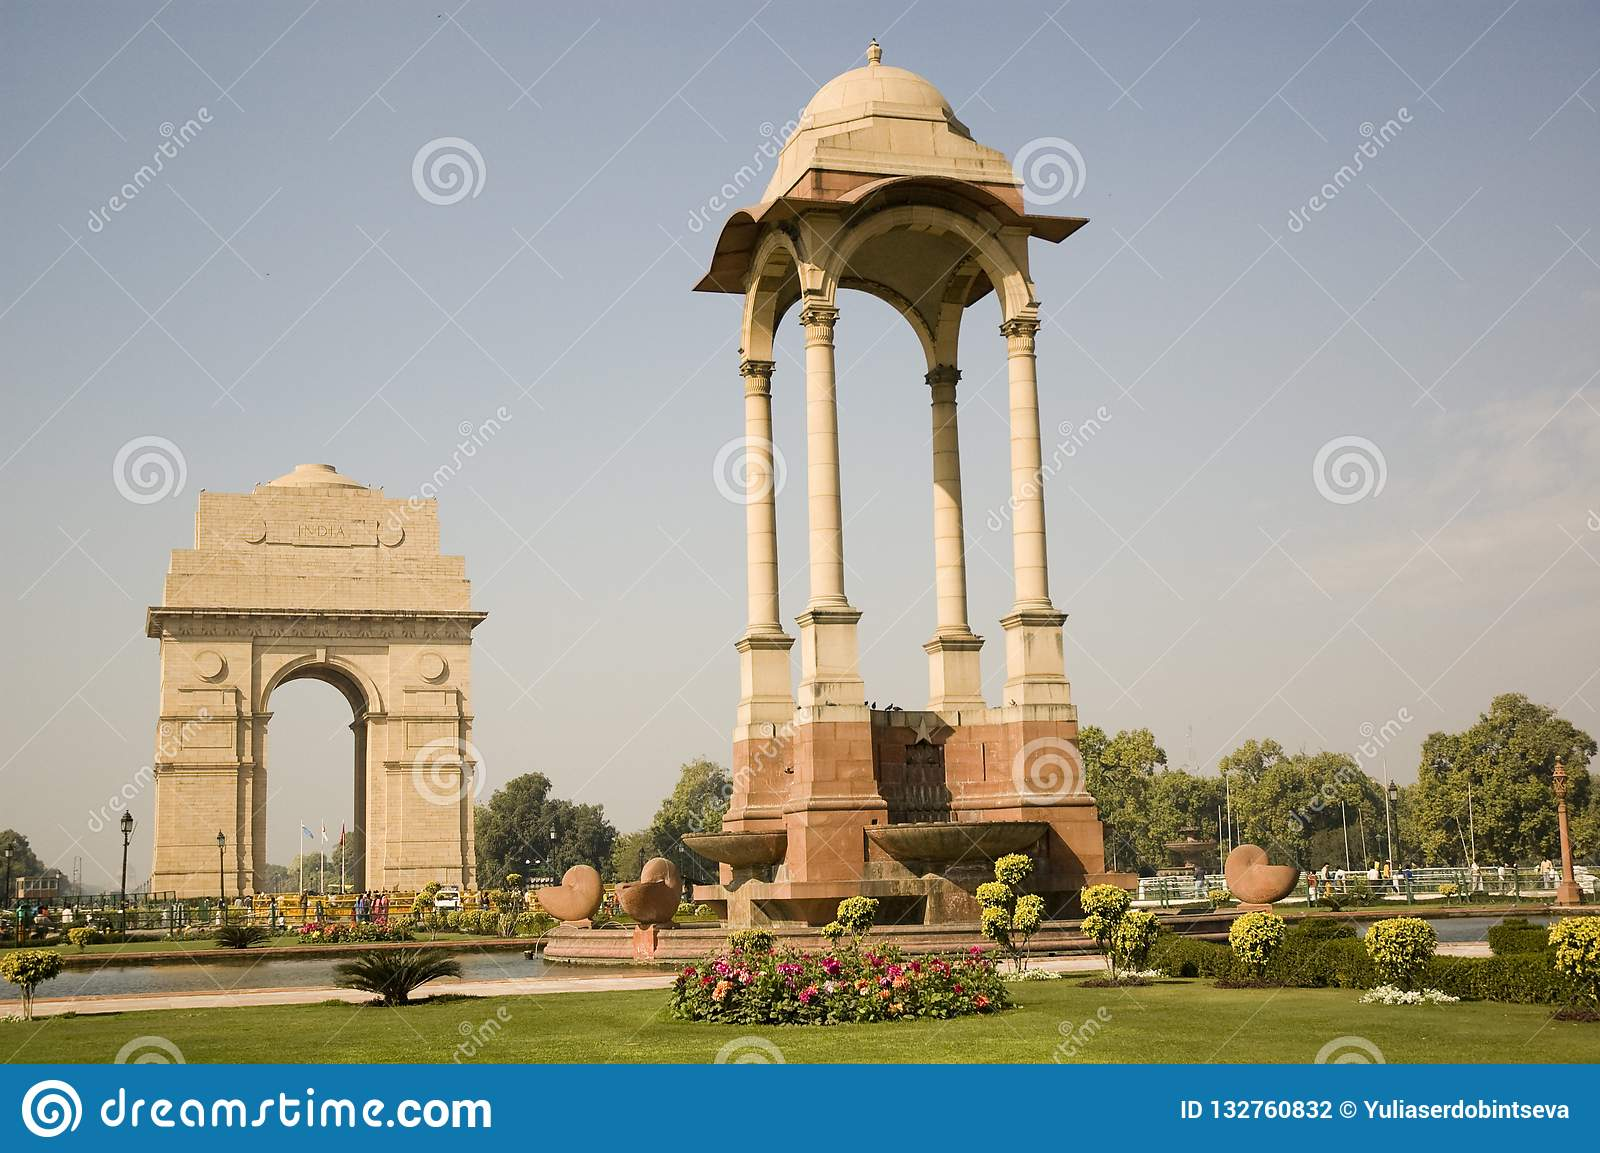 India gate at early morning, new delhi, india.